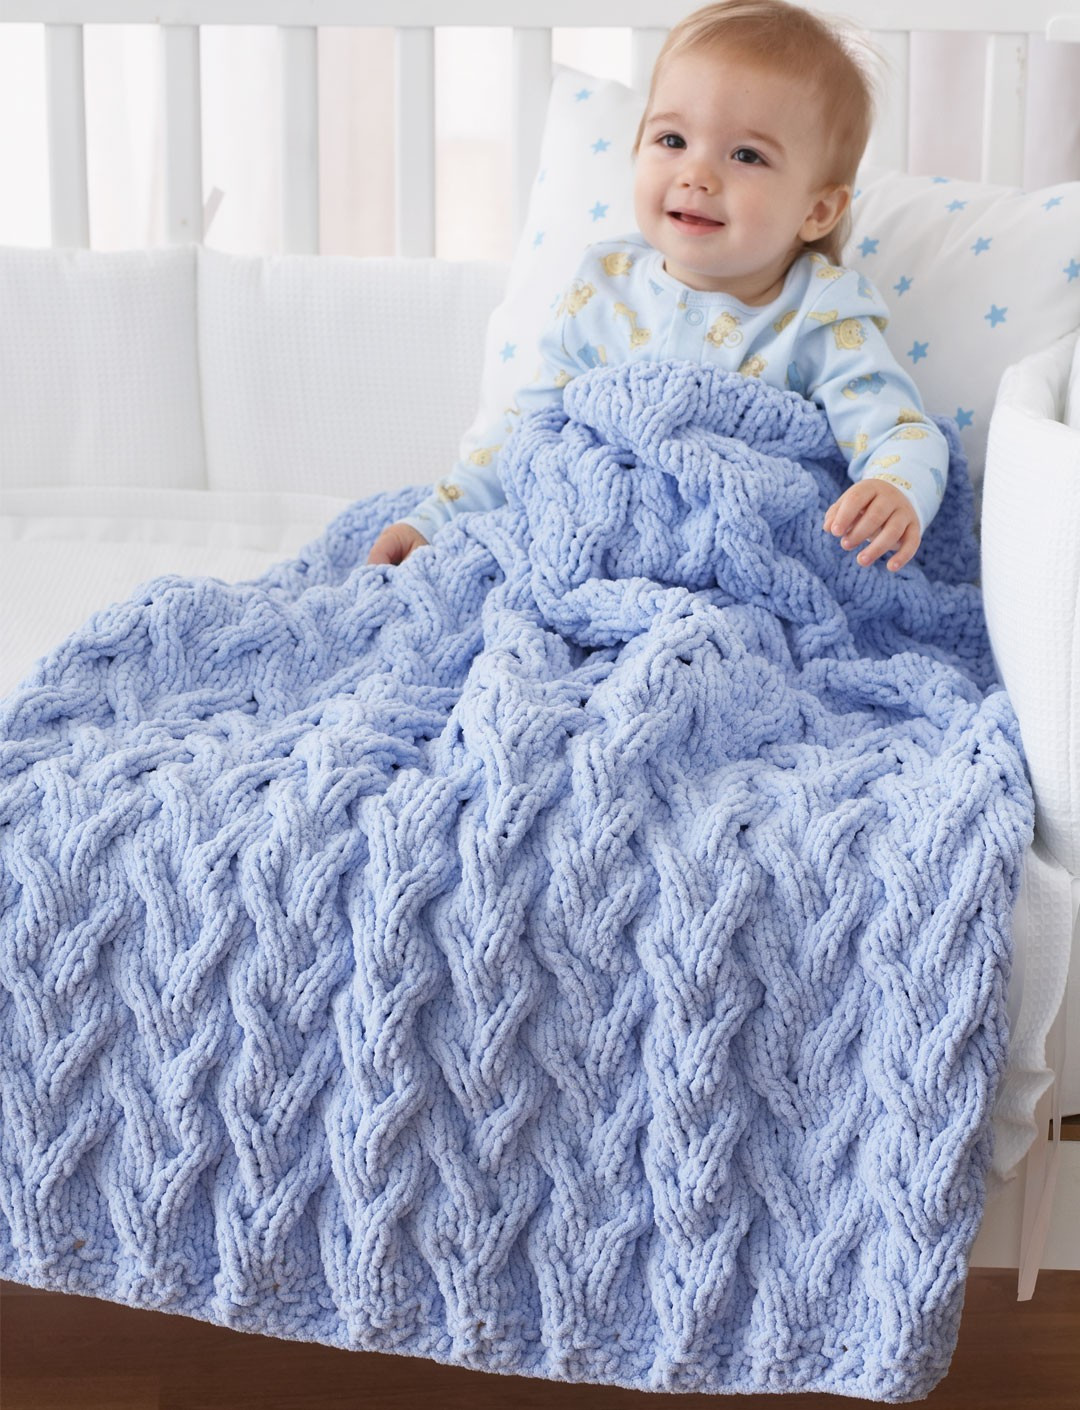 Bernat Blanket Yarn Patterns Unique Bernat Baby Blanket Super Bulky Yarn Crochet Patterns Of New 42 Photos Bernat Blanket Yarn Patterns